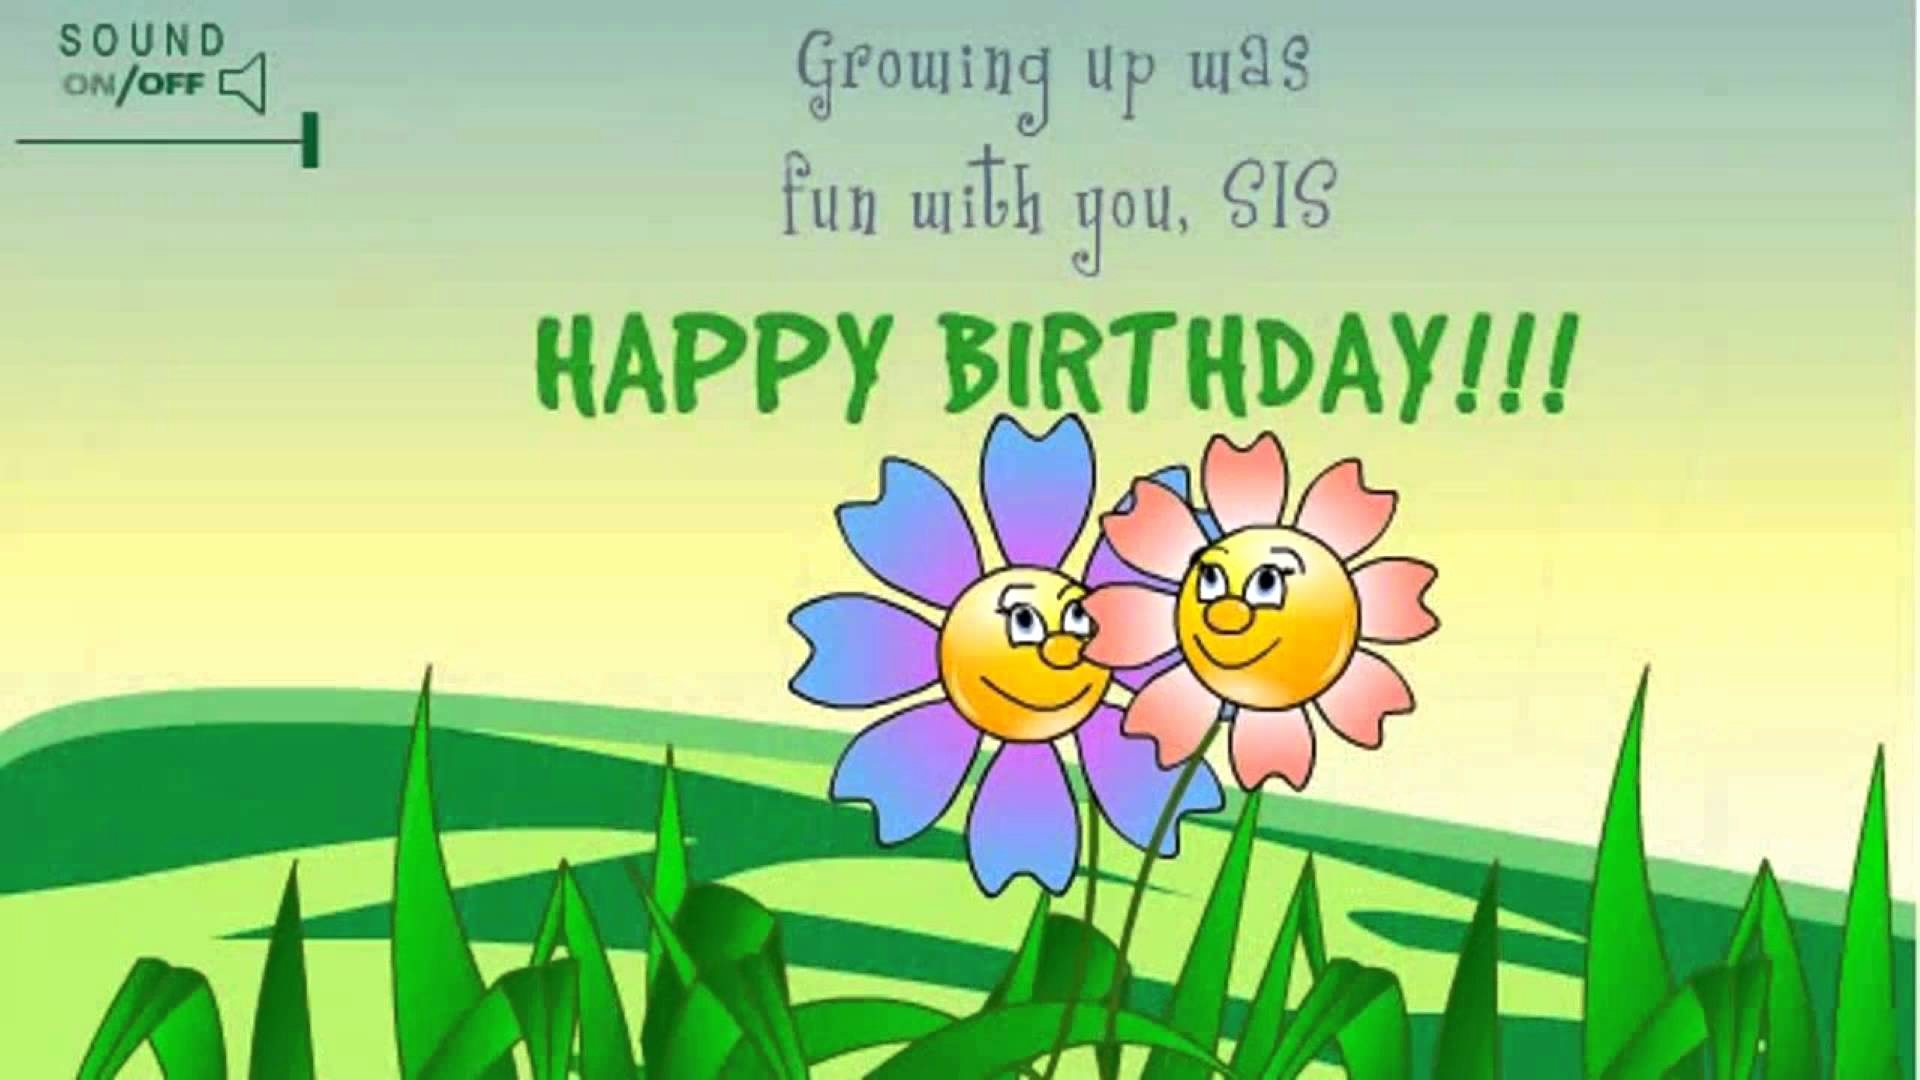 happy birthday sister card messages ; send-e-birthday-card-fresh-happy-birthday-sister-wishes-ecards-message-of-send-e-birthday-card